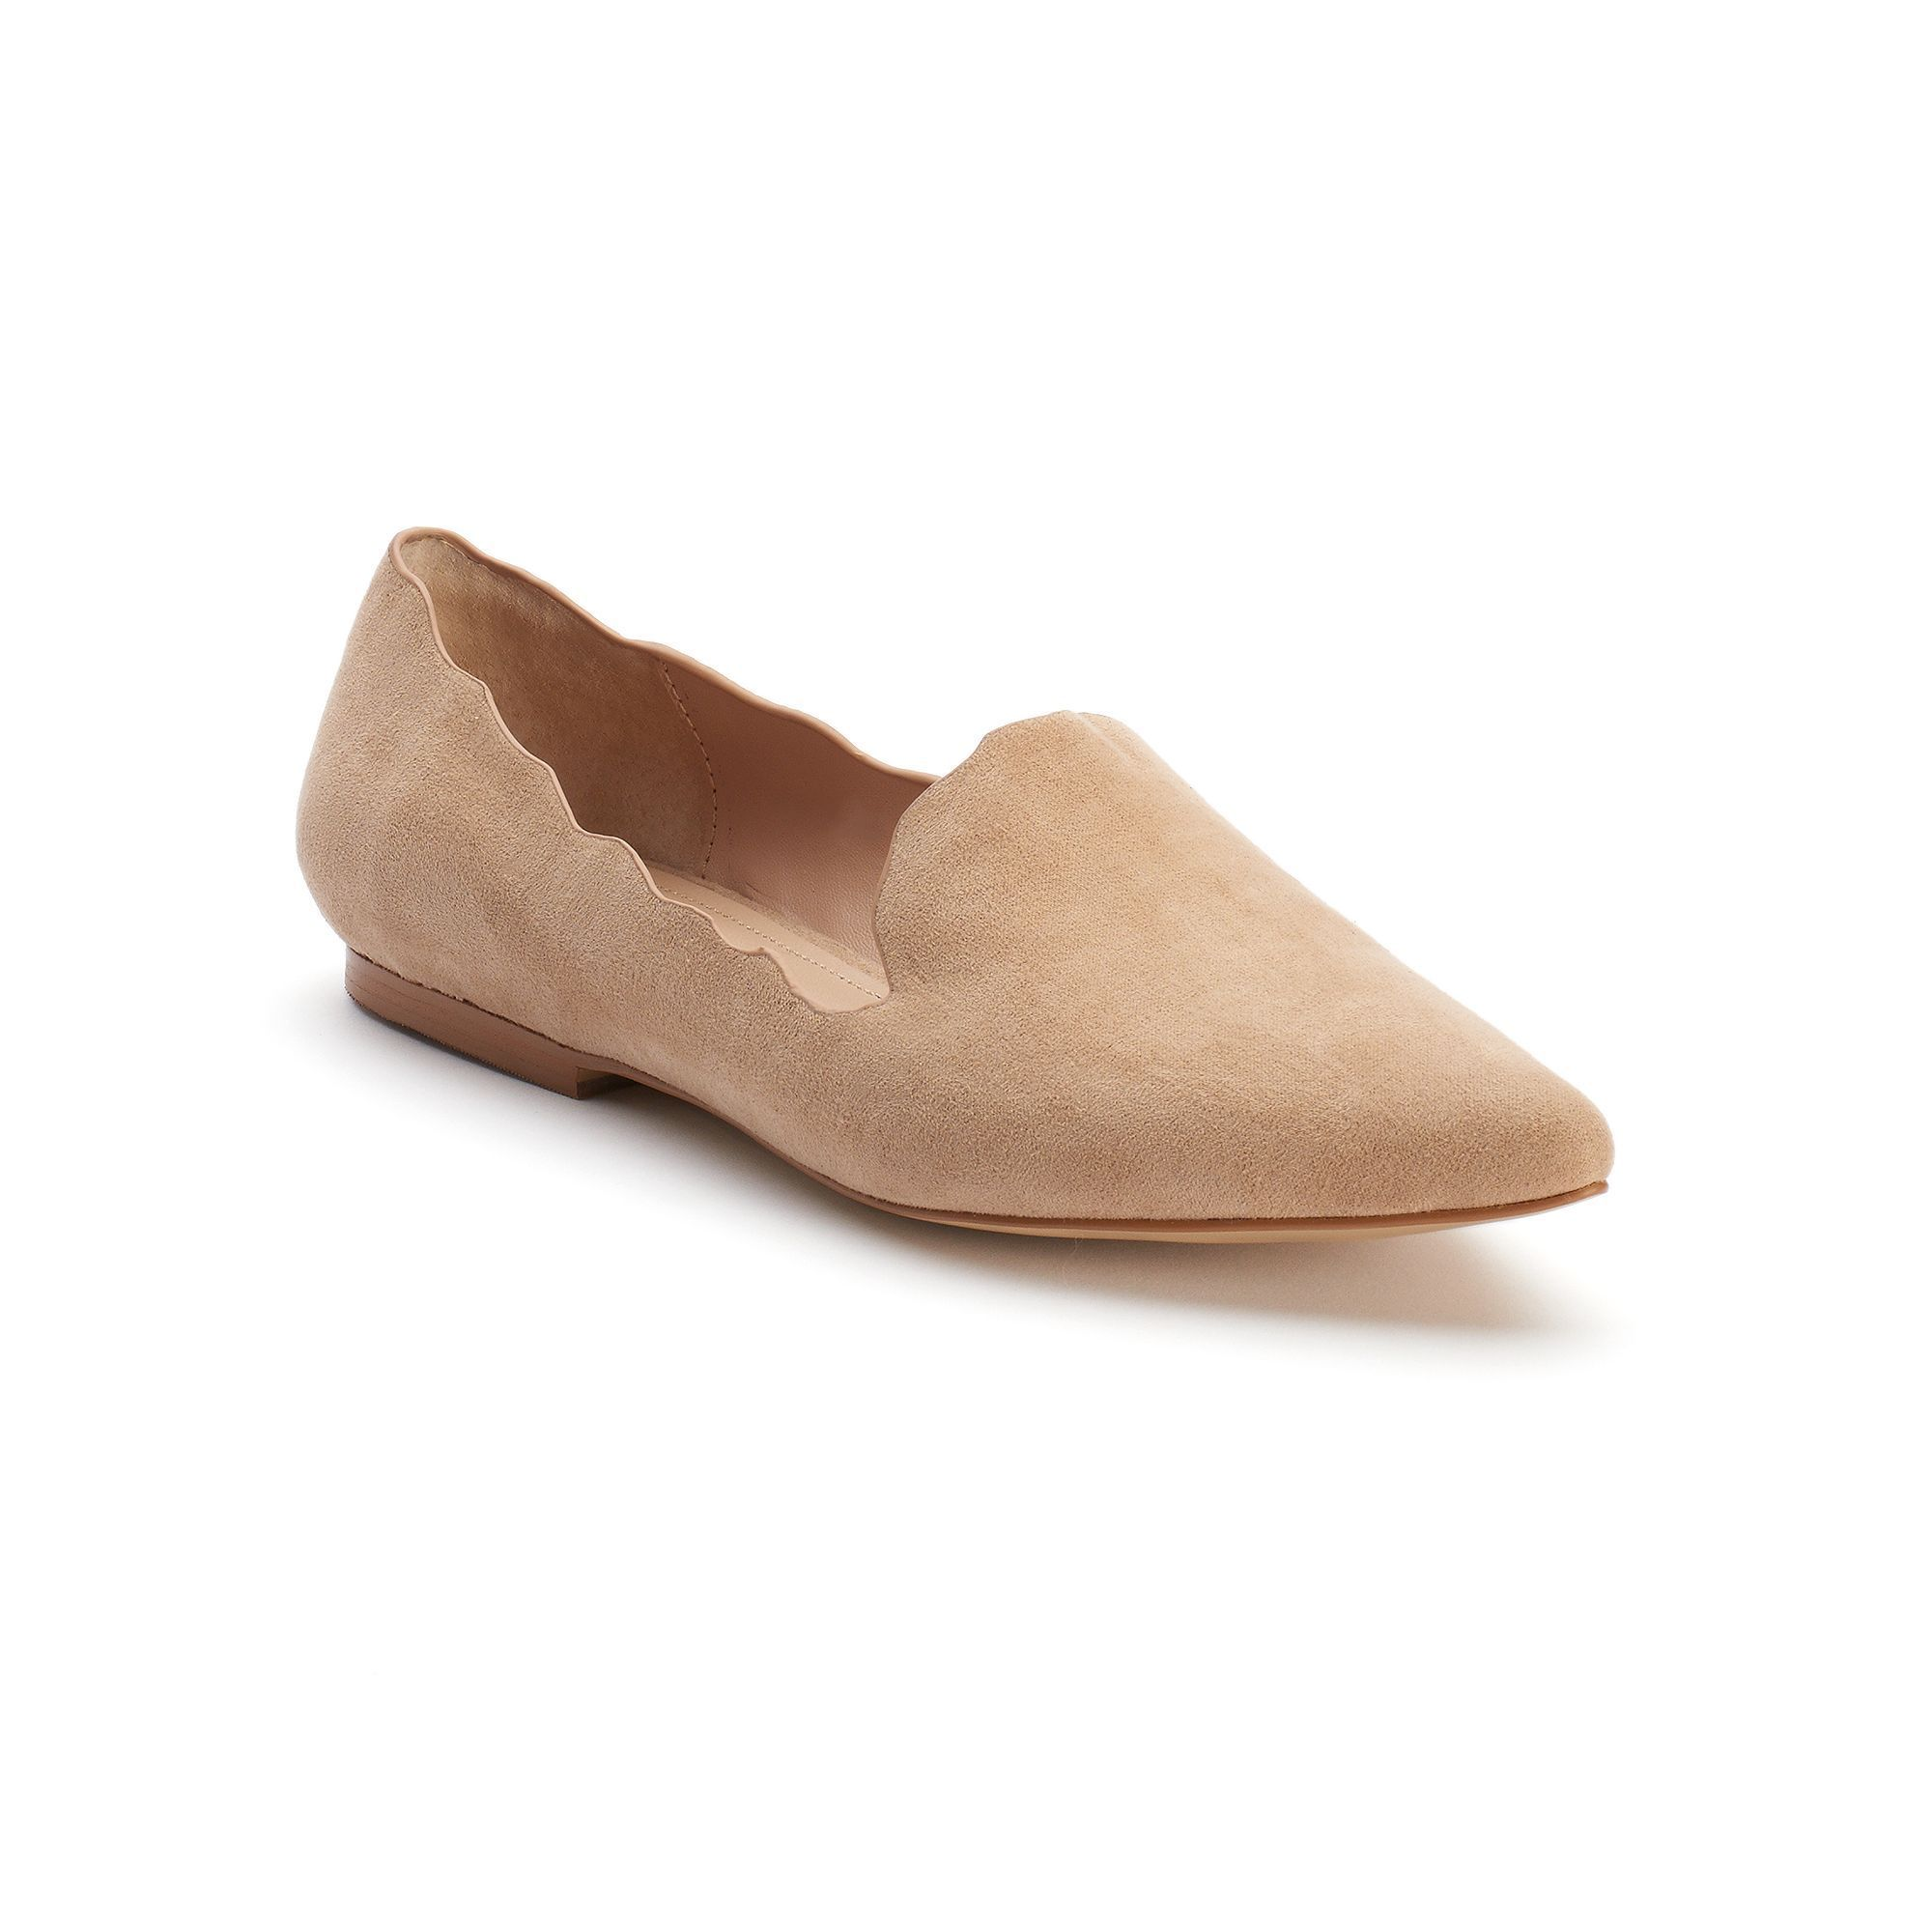 Style Charles by Charles David ... Kit Women's Loafers AZVrT5